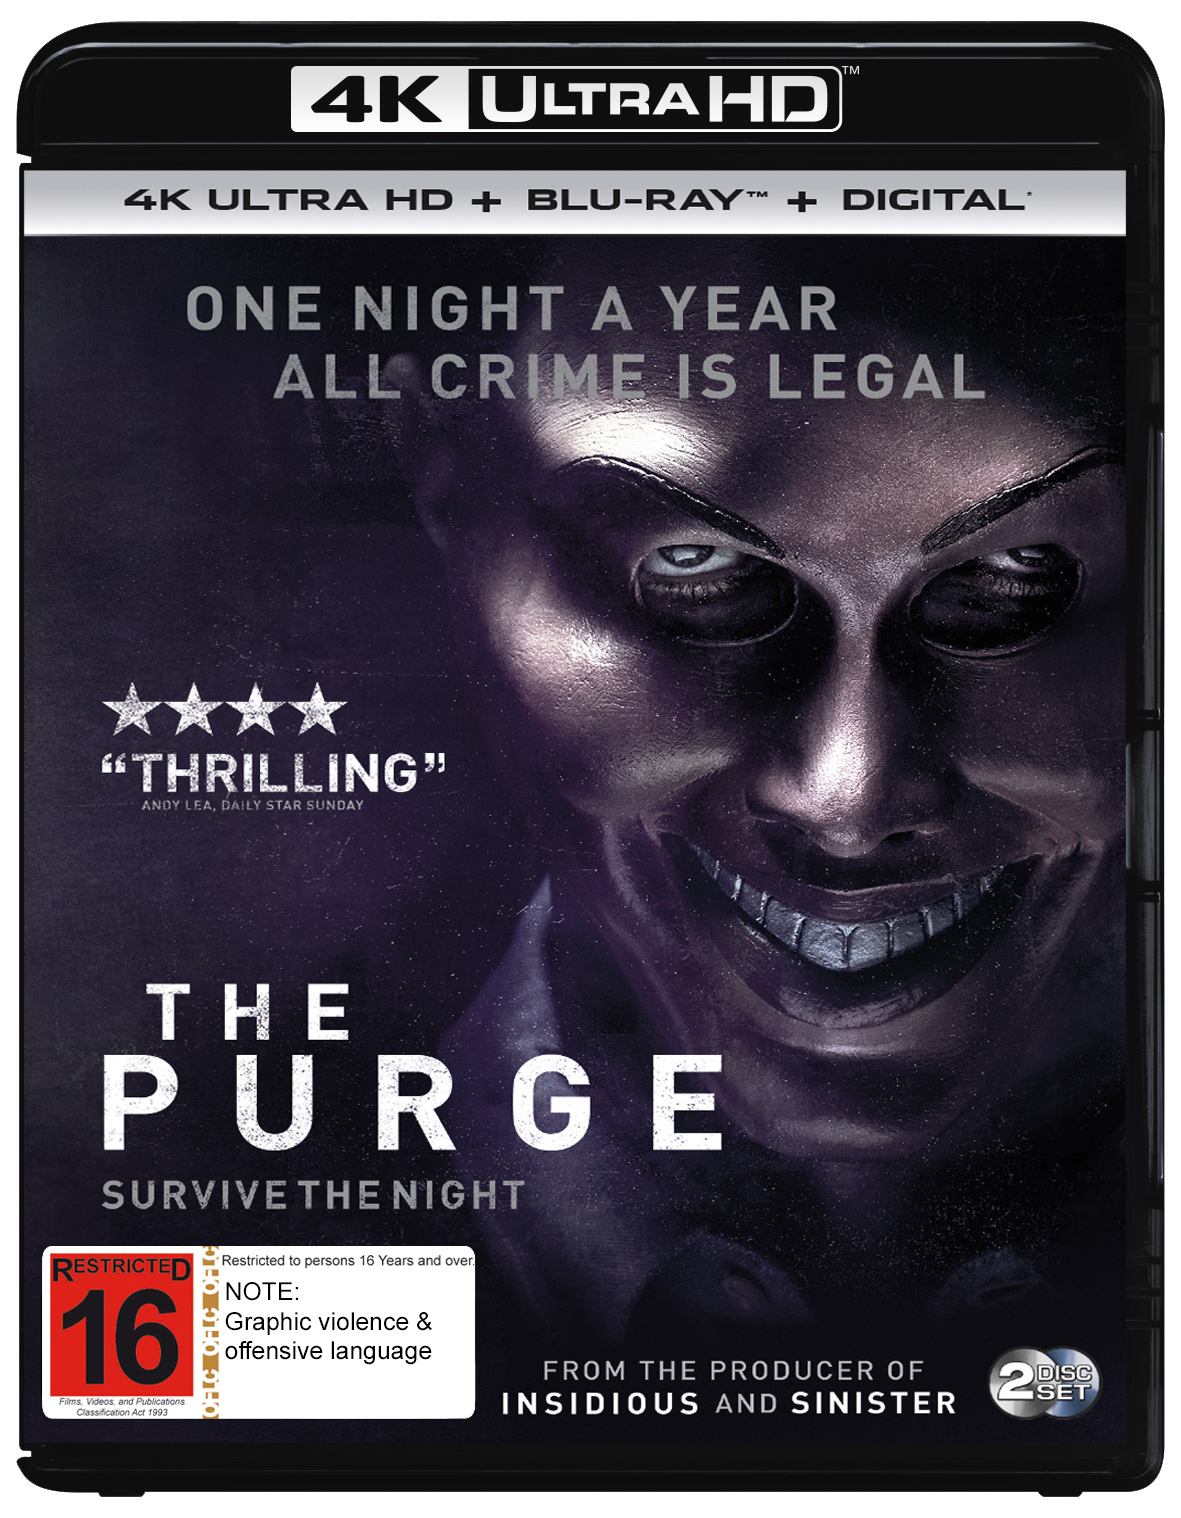 The Purge on UHD Blu-ray image